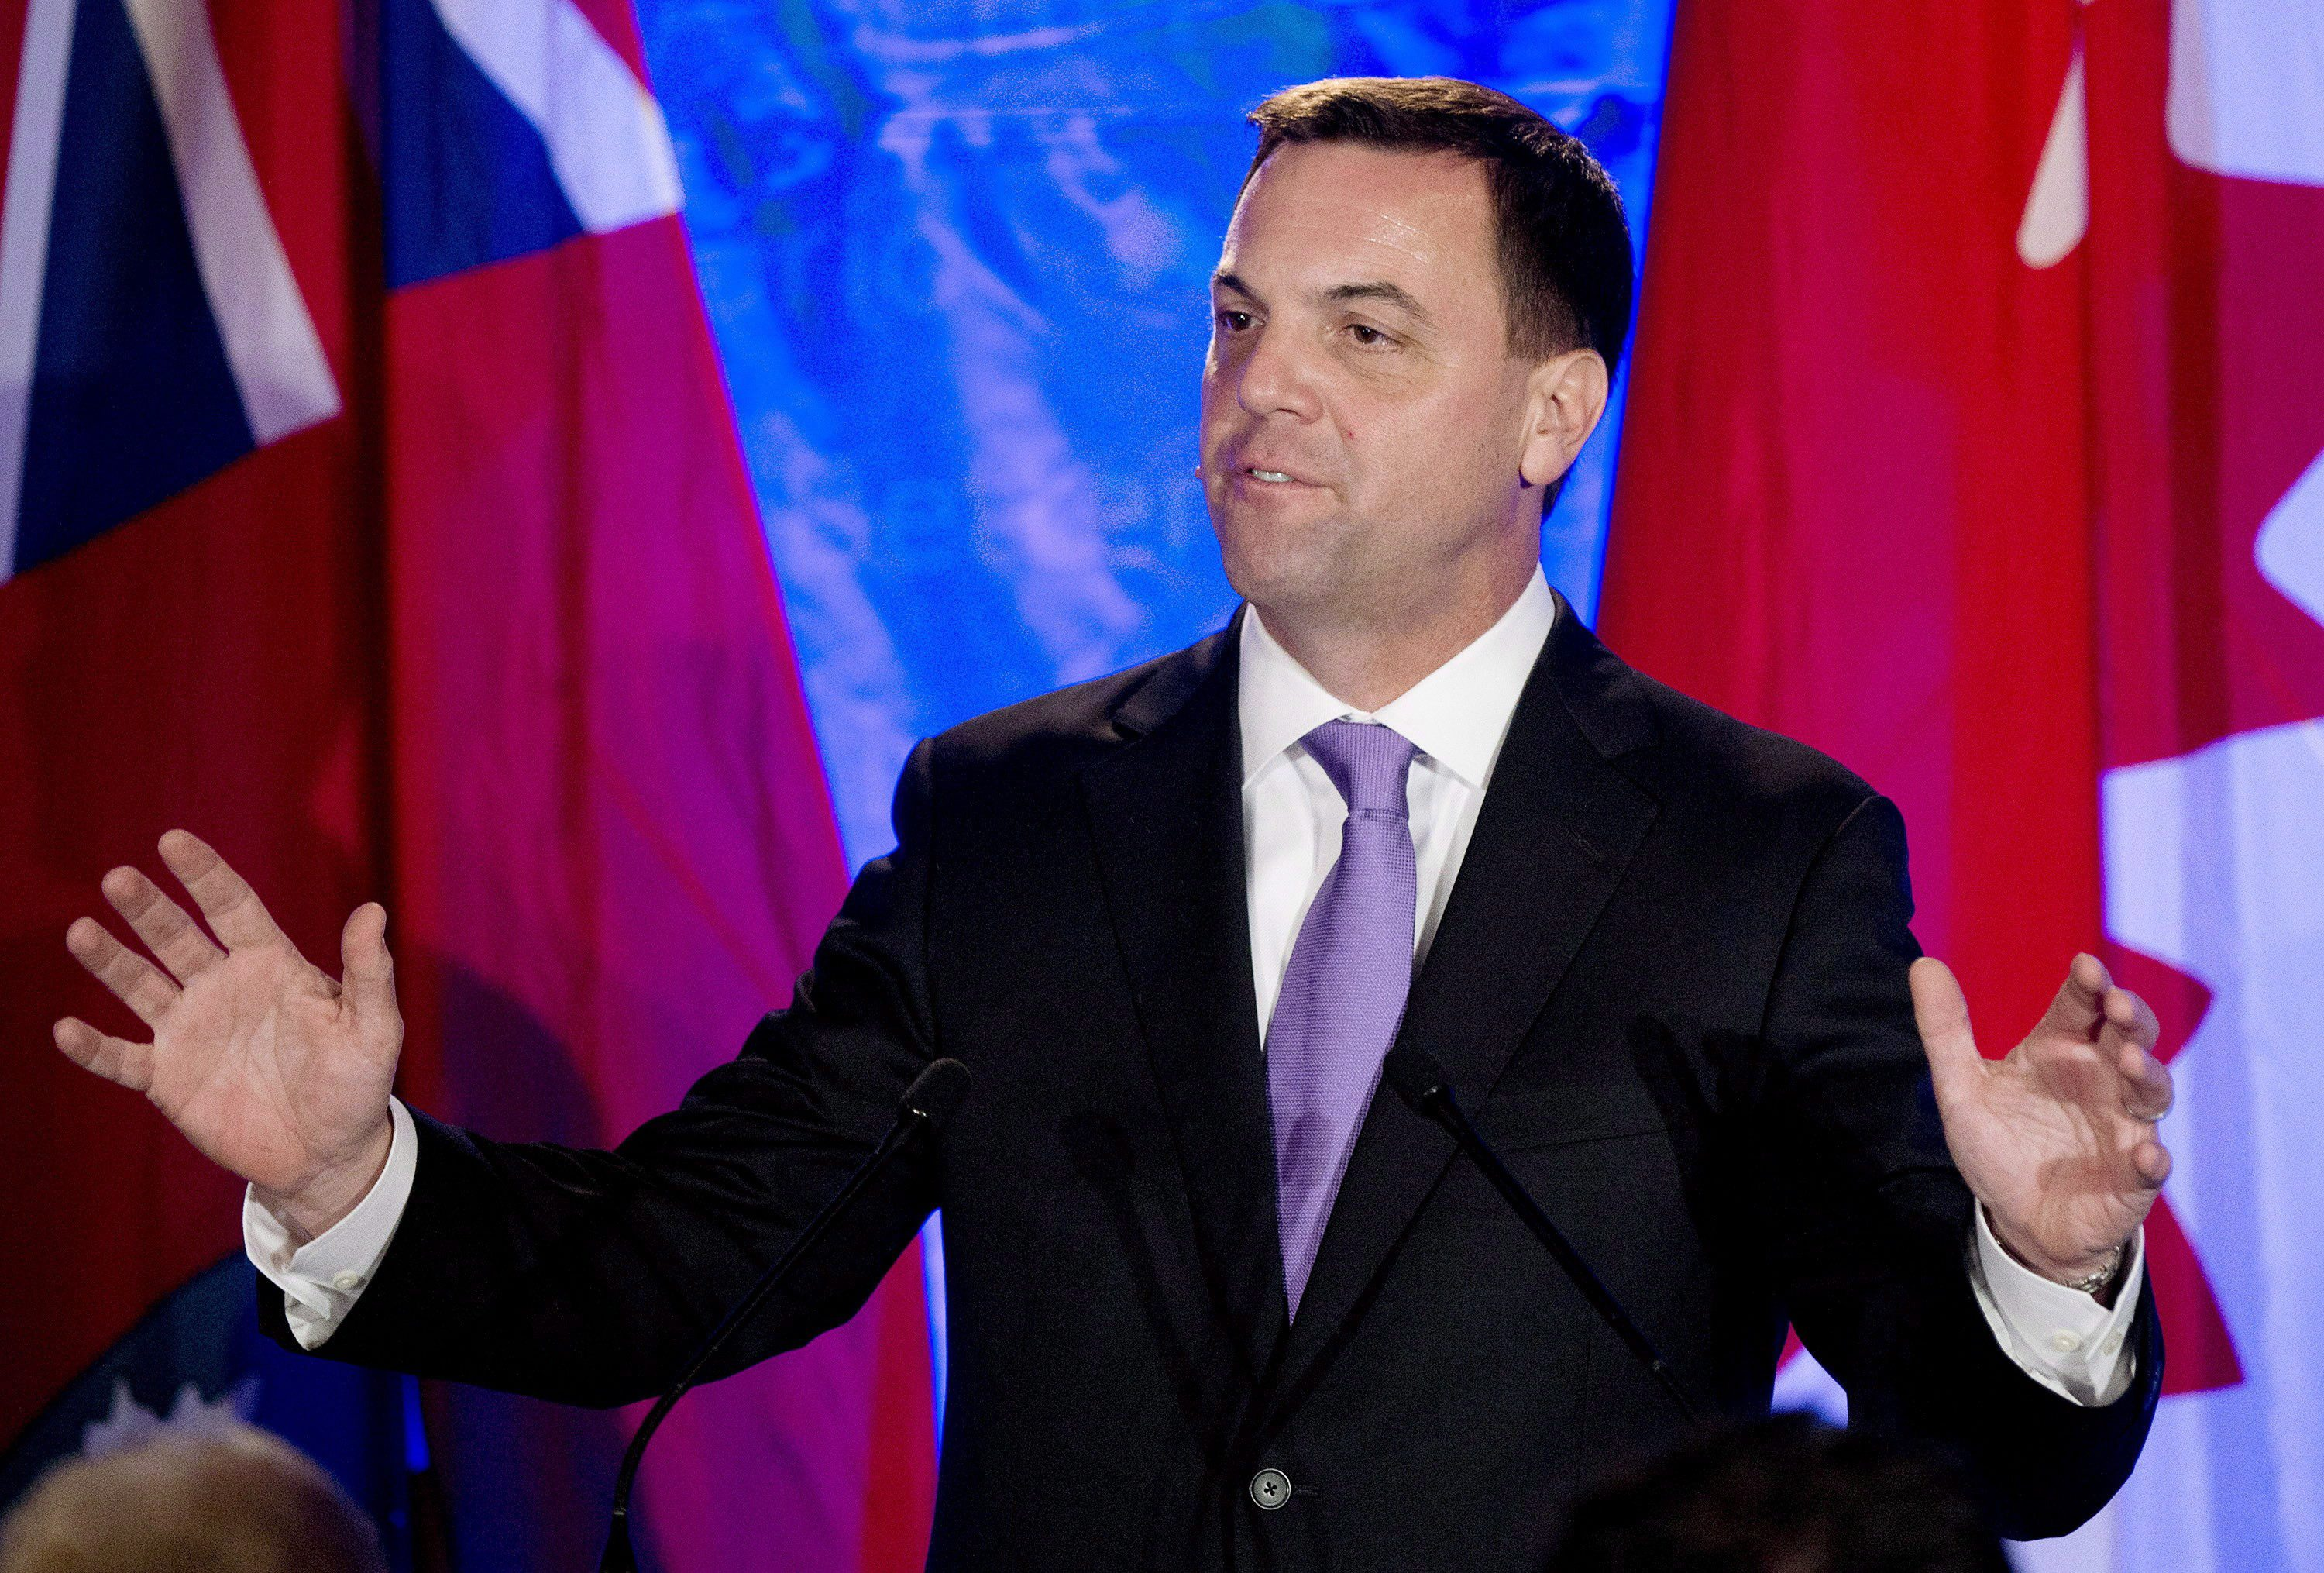 Ontario Progressive Conservative leader Tim Hudak announces that he will be stepping down as party leader after being defeated at his election night campaign head quarters in Grimsby, Ont., on Thursday, June 12, 2014. Hudak will resign his seat in the legislature next month and become CEO of the Ontario Real Estate Association. THE CANADIAN PRESS/Nathan Denette